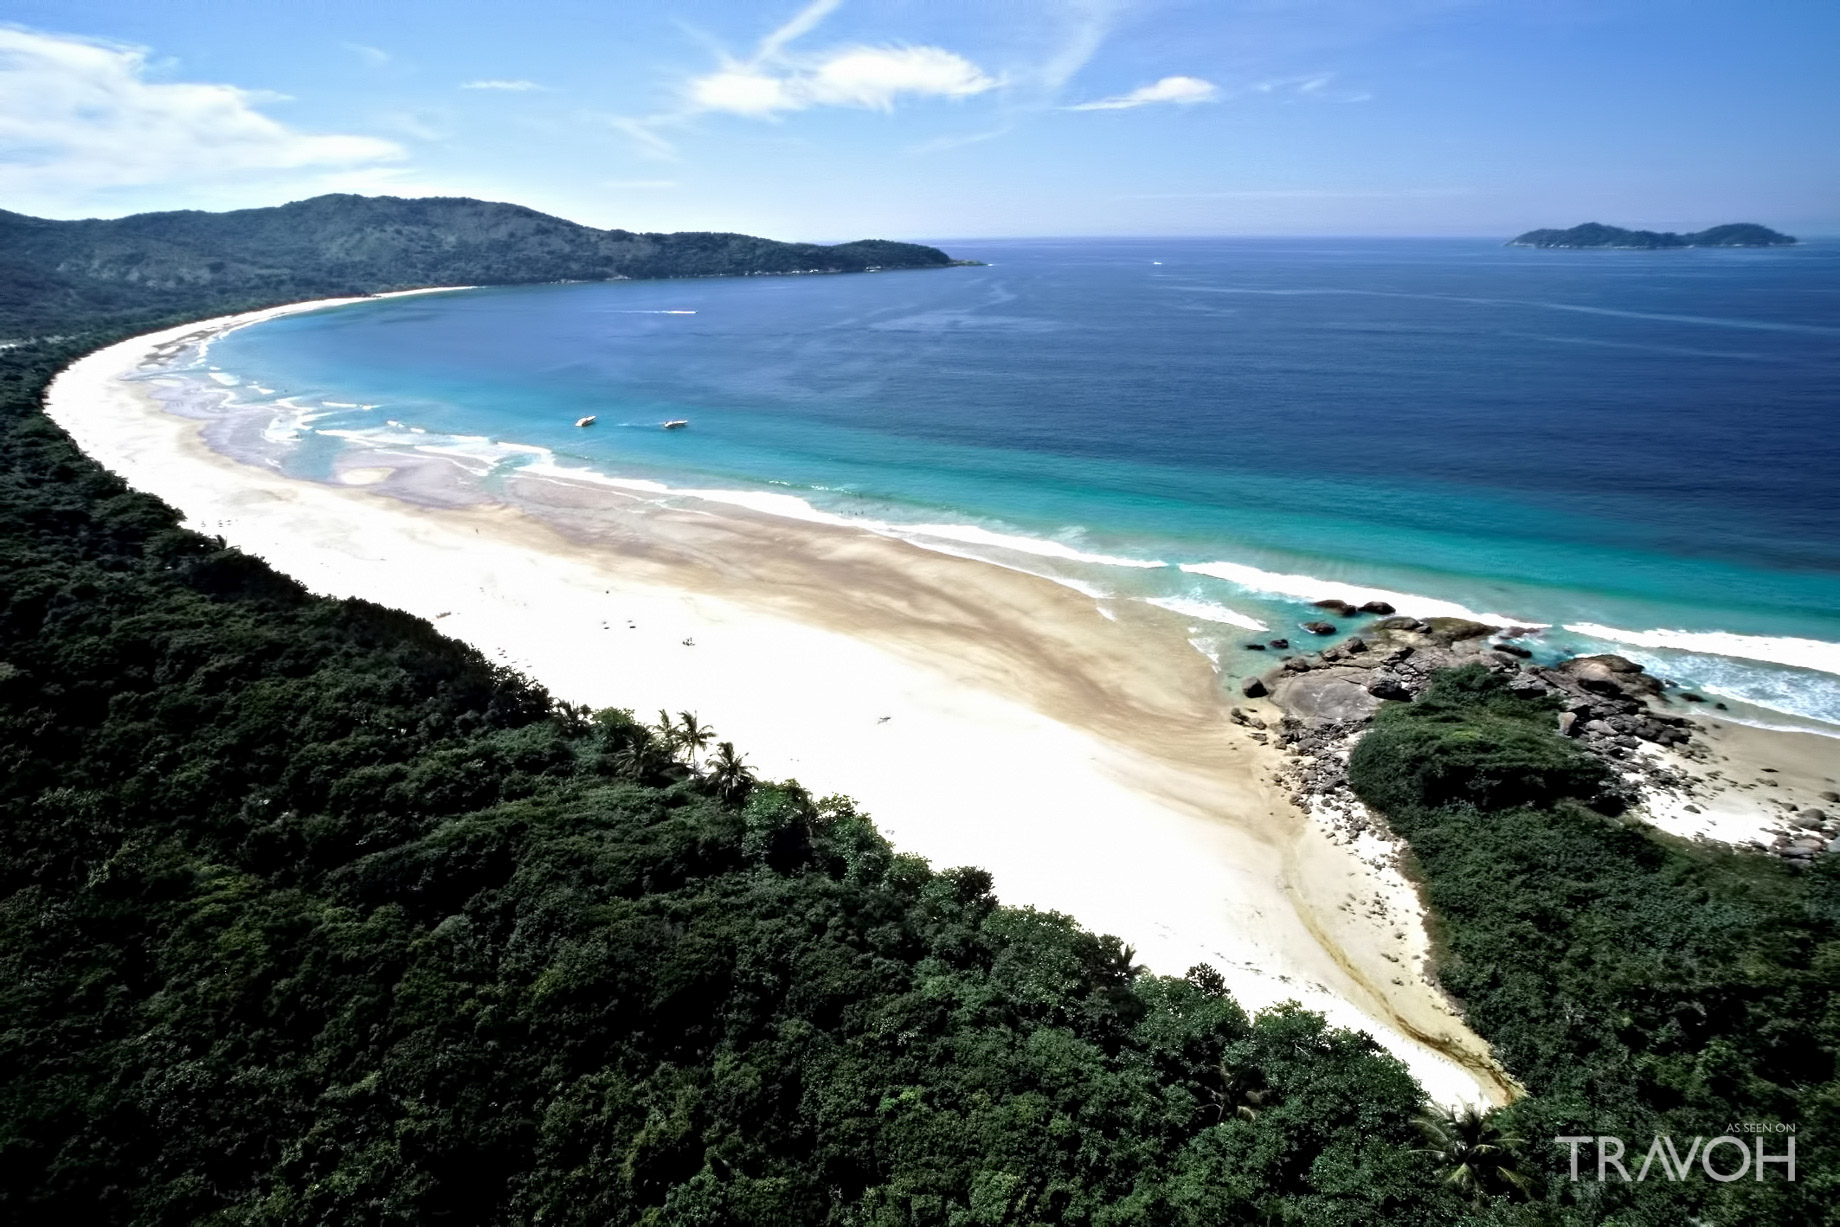 Lopes Mendes Beach - Exploring 10+1 of the Top Beaches in Rio de Janeiro, Brazil